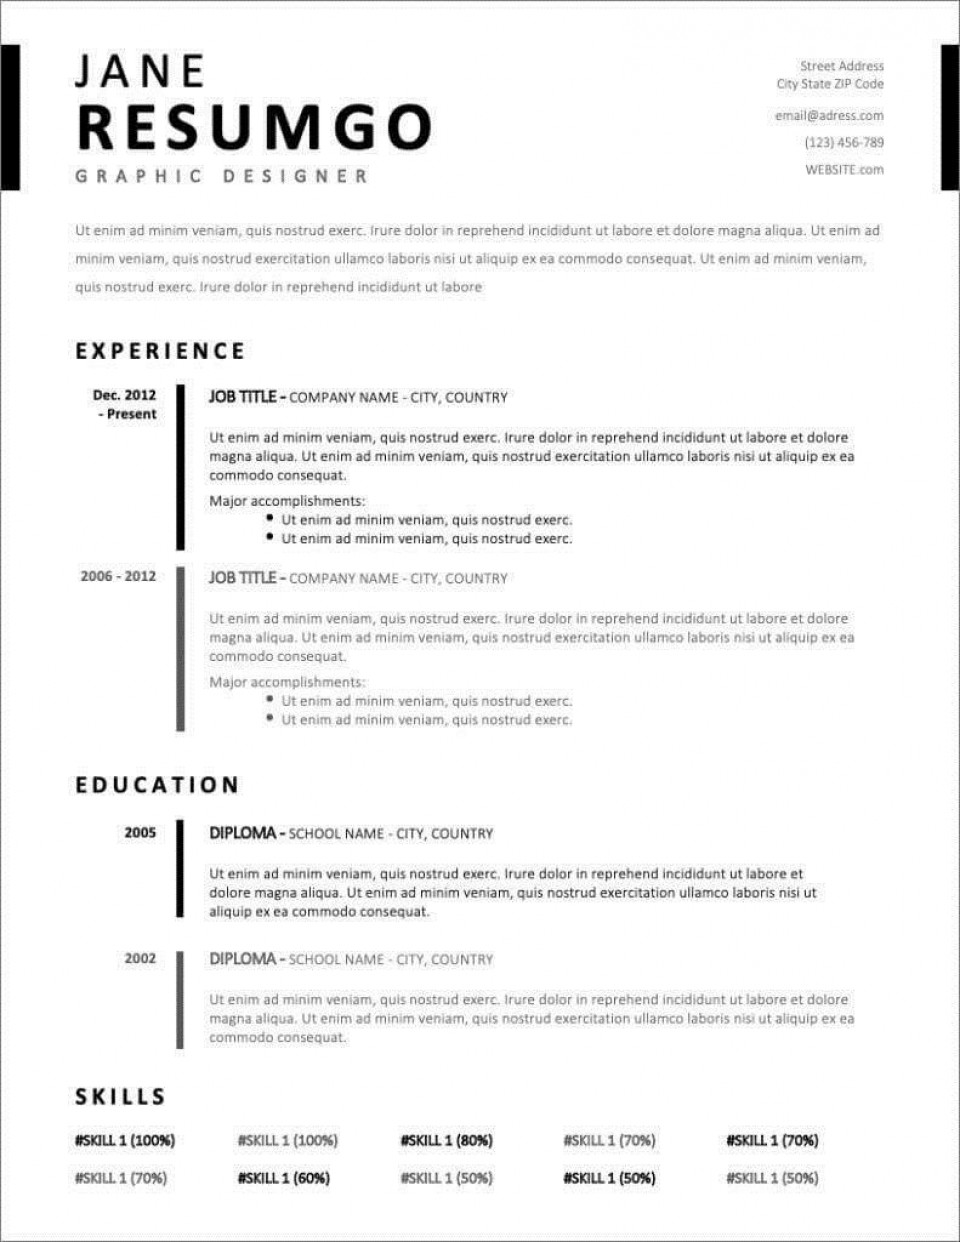 003 Wonderful Download Resume Template Free Example  For Mac Best Creative Professional Microsoft Word960